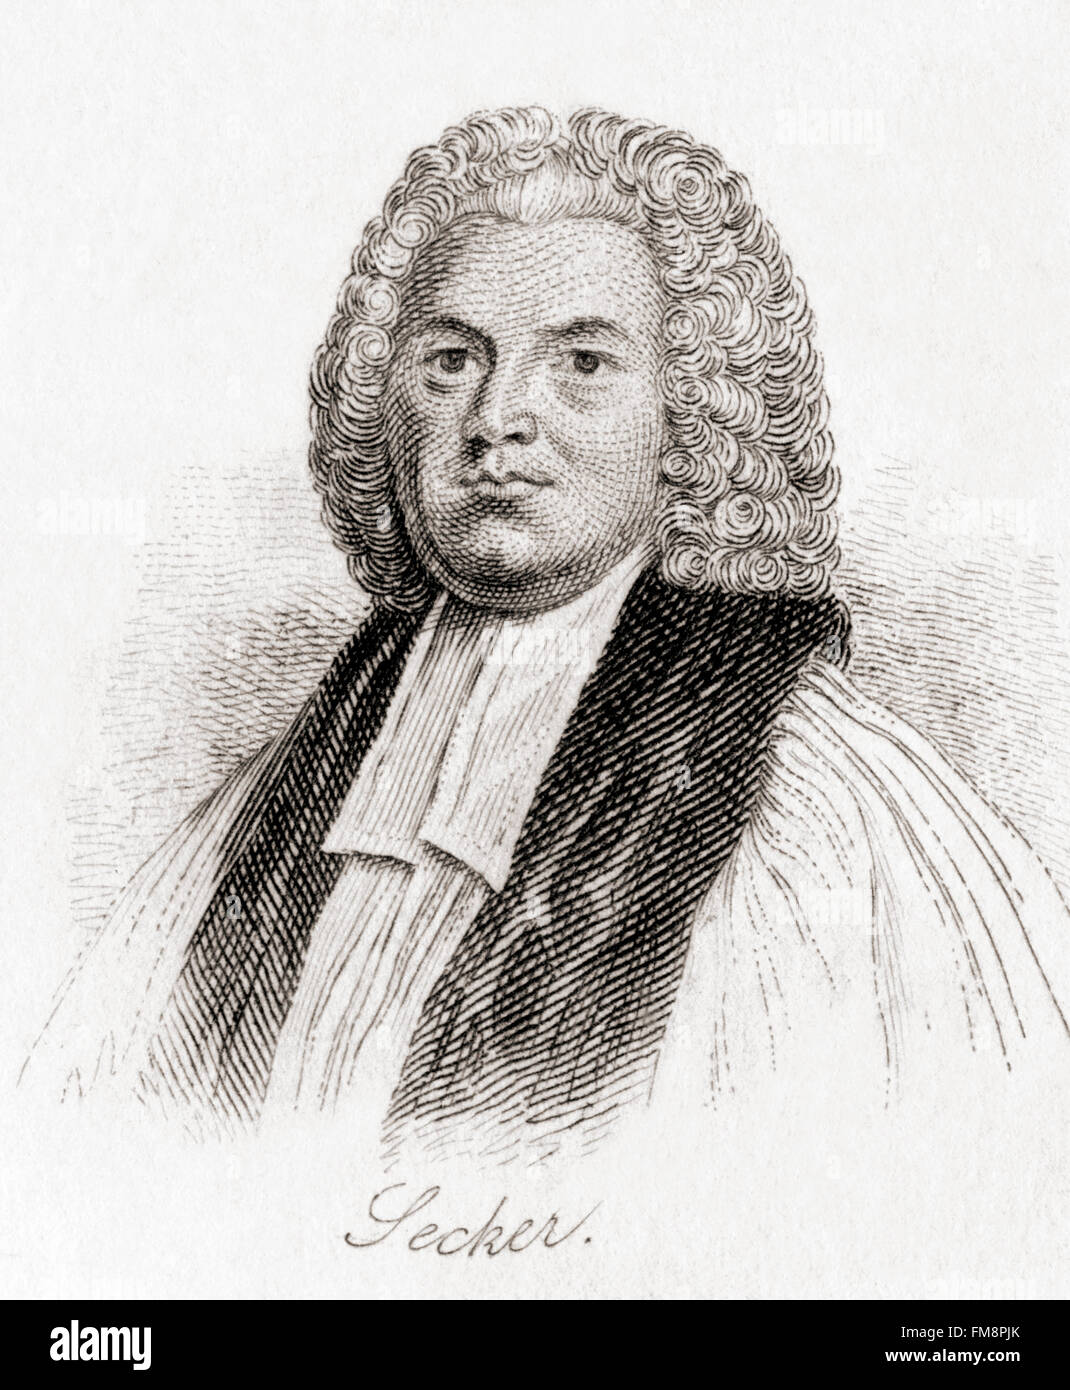 Thomas Secker, 1693 – 1768.  Archbishop of Canterbury in the Church of England. - Stock Image